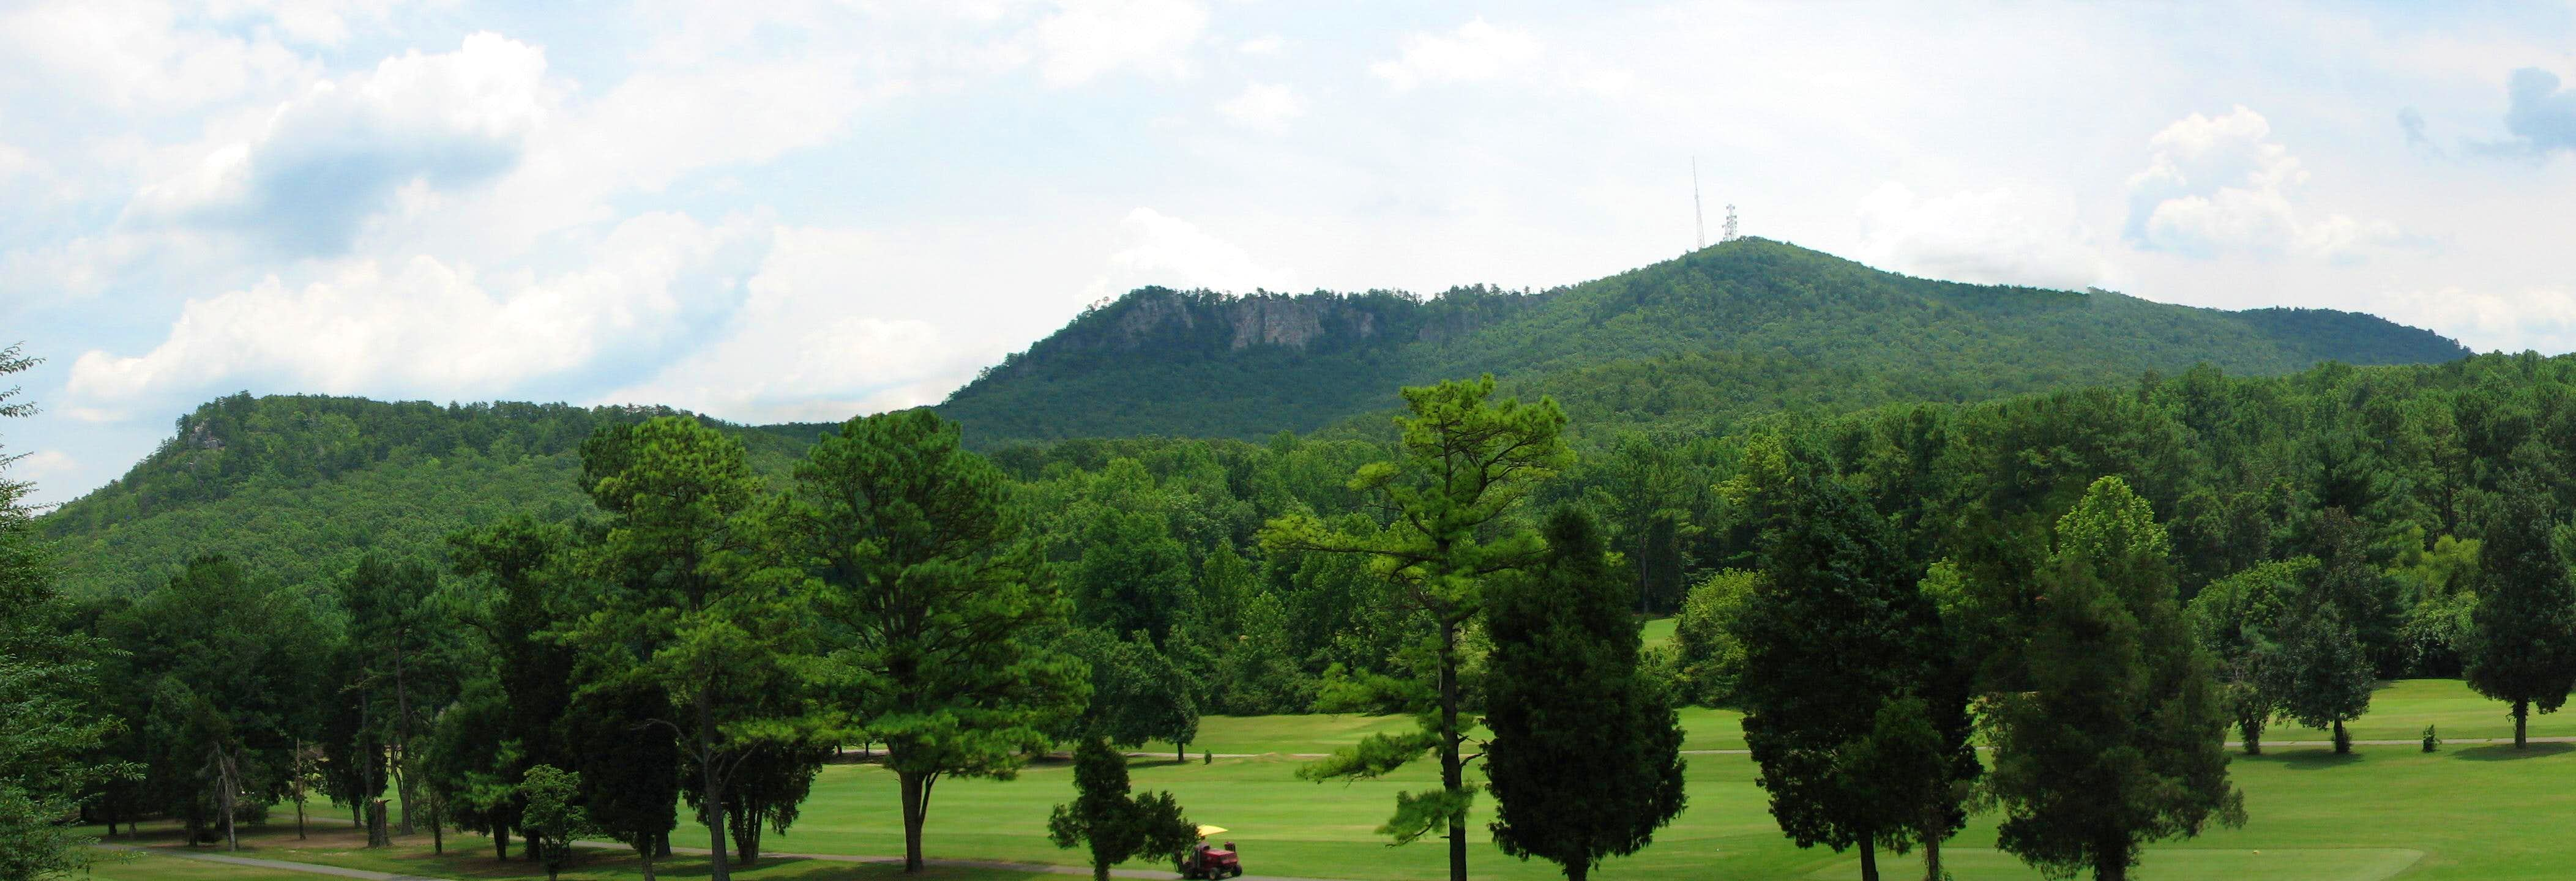 Crowder\'s Mountain